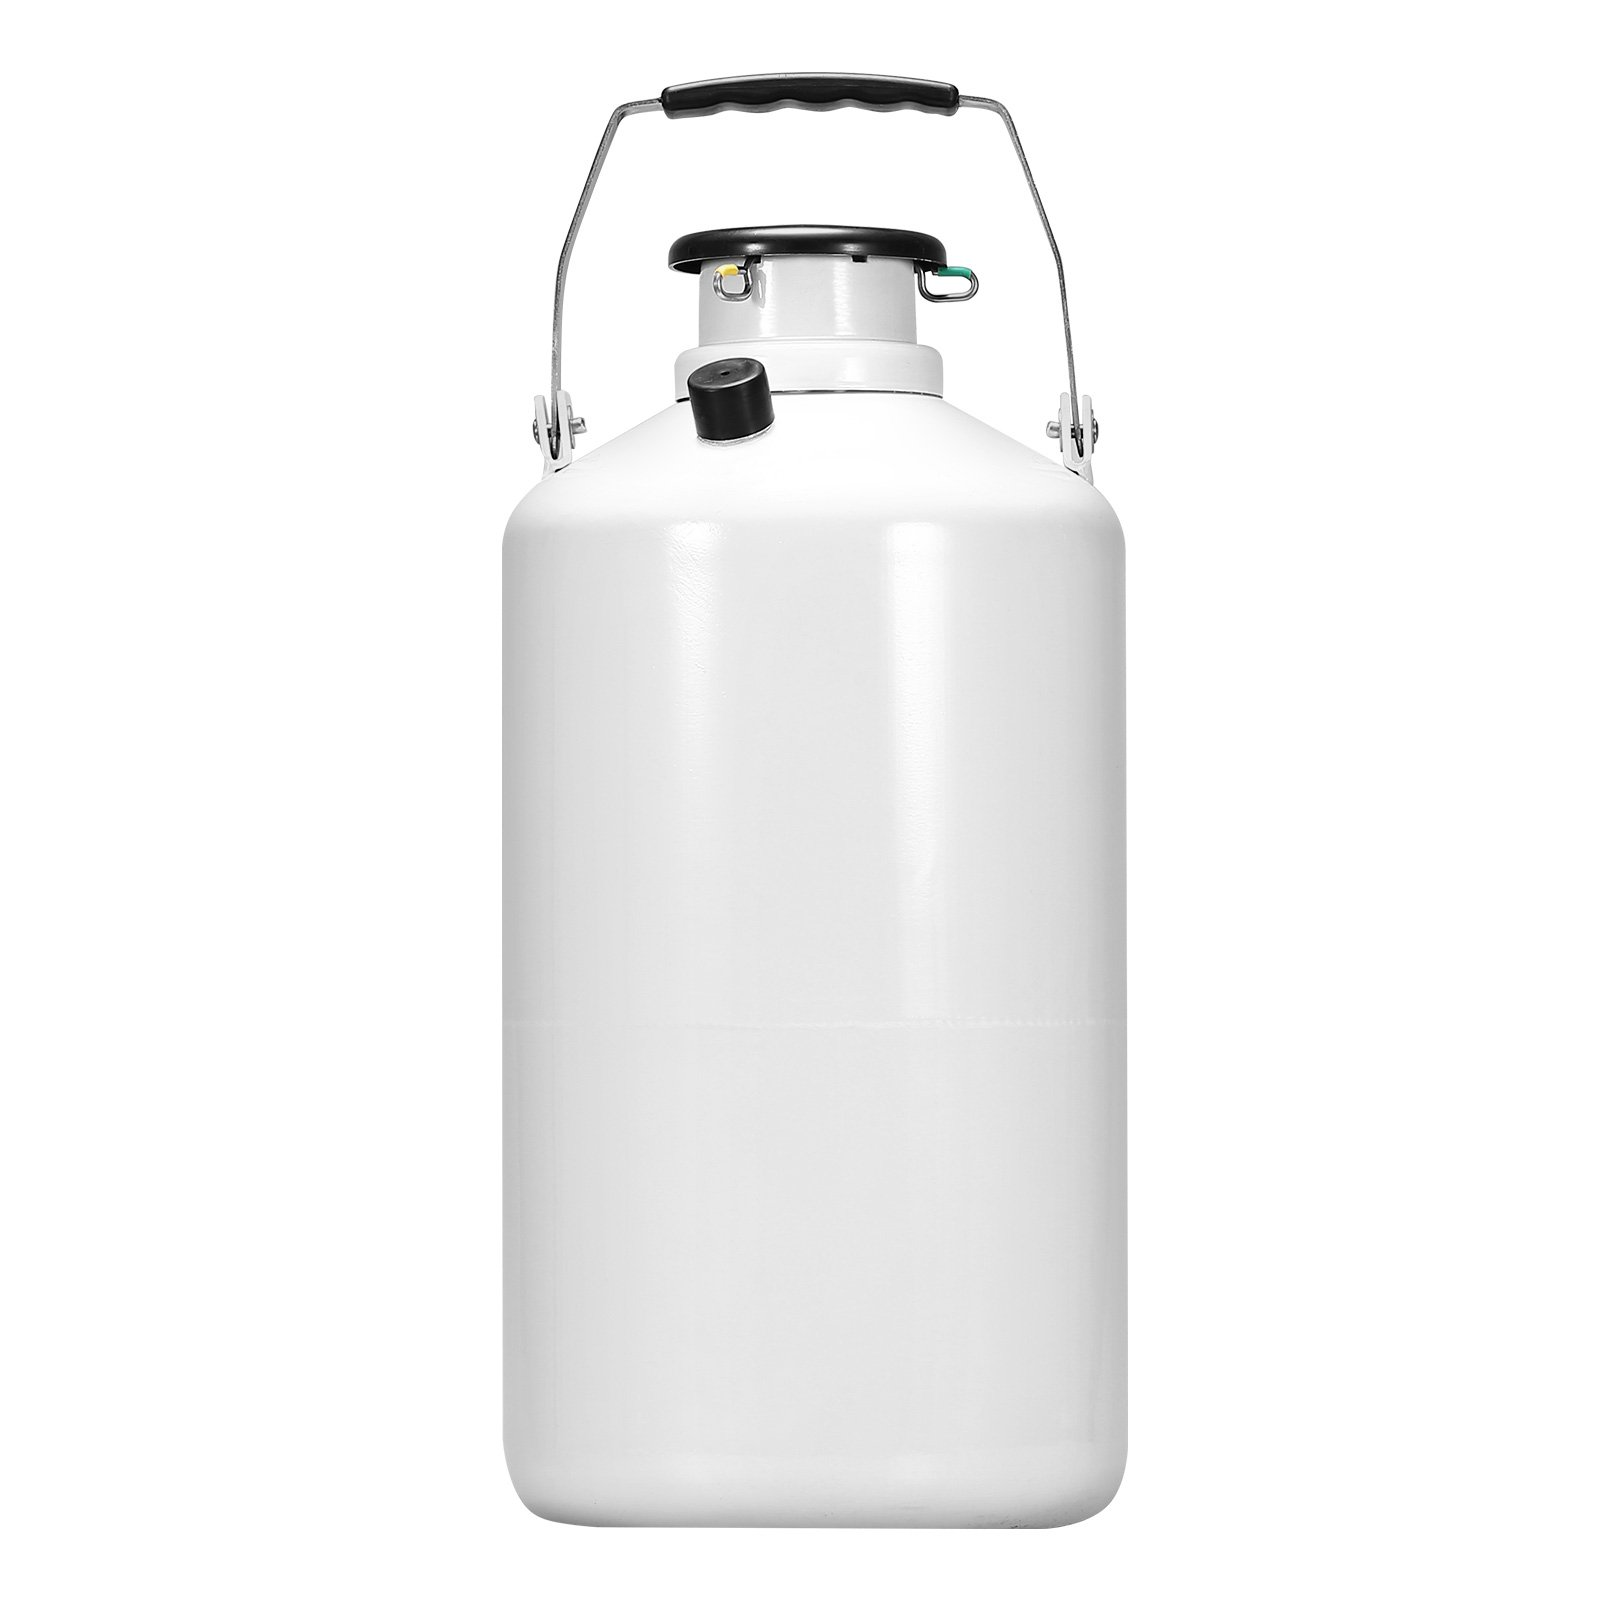 BestEquip Liquid Nitrogen Container Aluminum Alloy Liquid Nitrogen Tank Cryogenic Container with 3 Canisters and Carry Bag (3L) by BestEquip (Image #2)